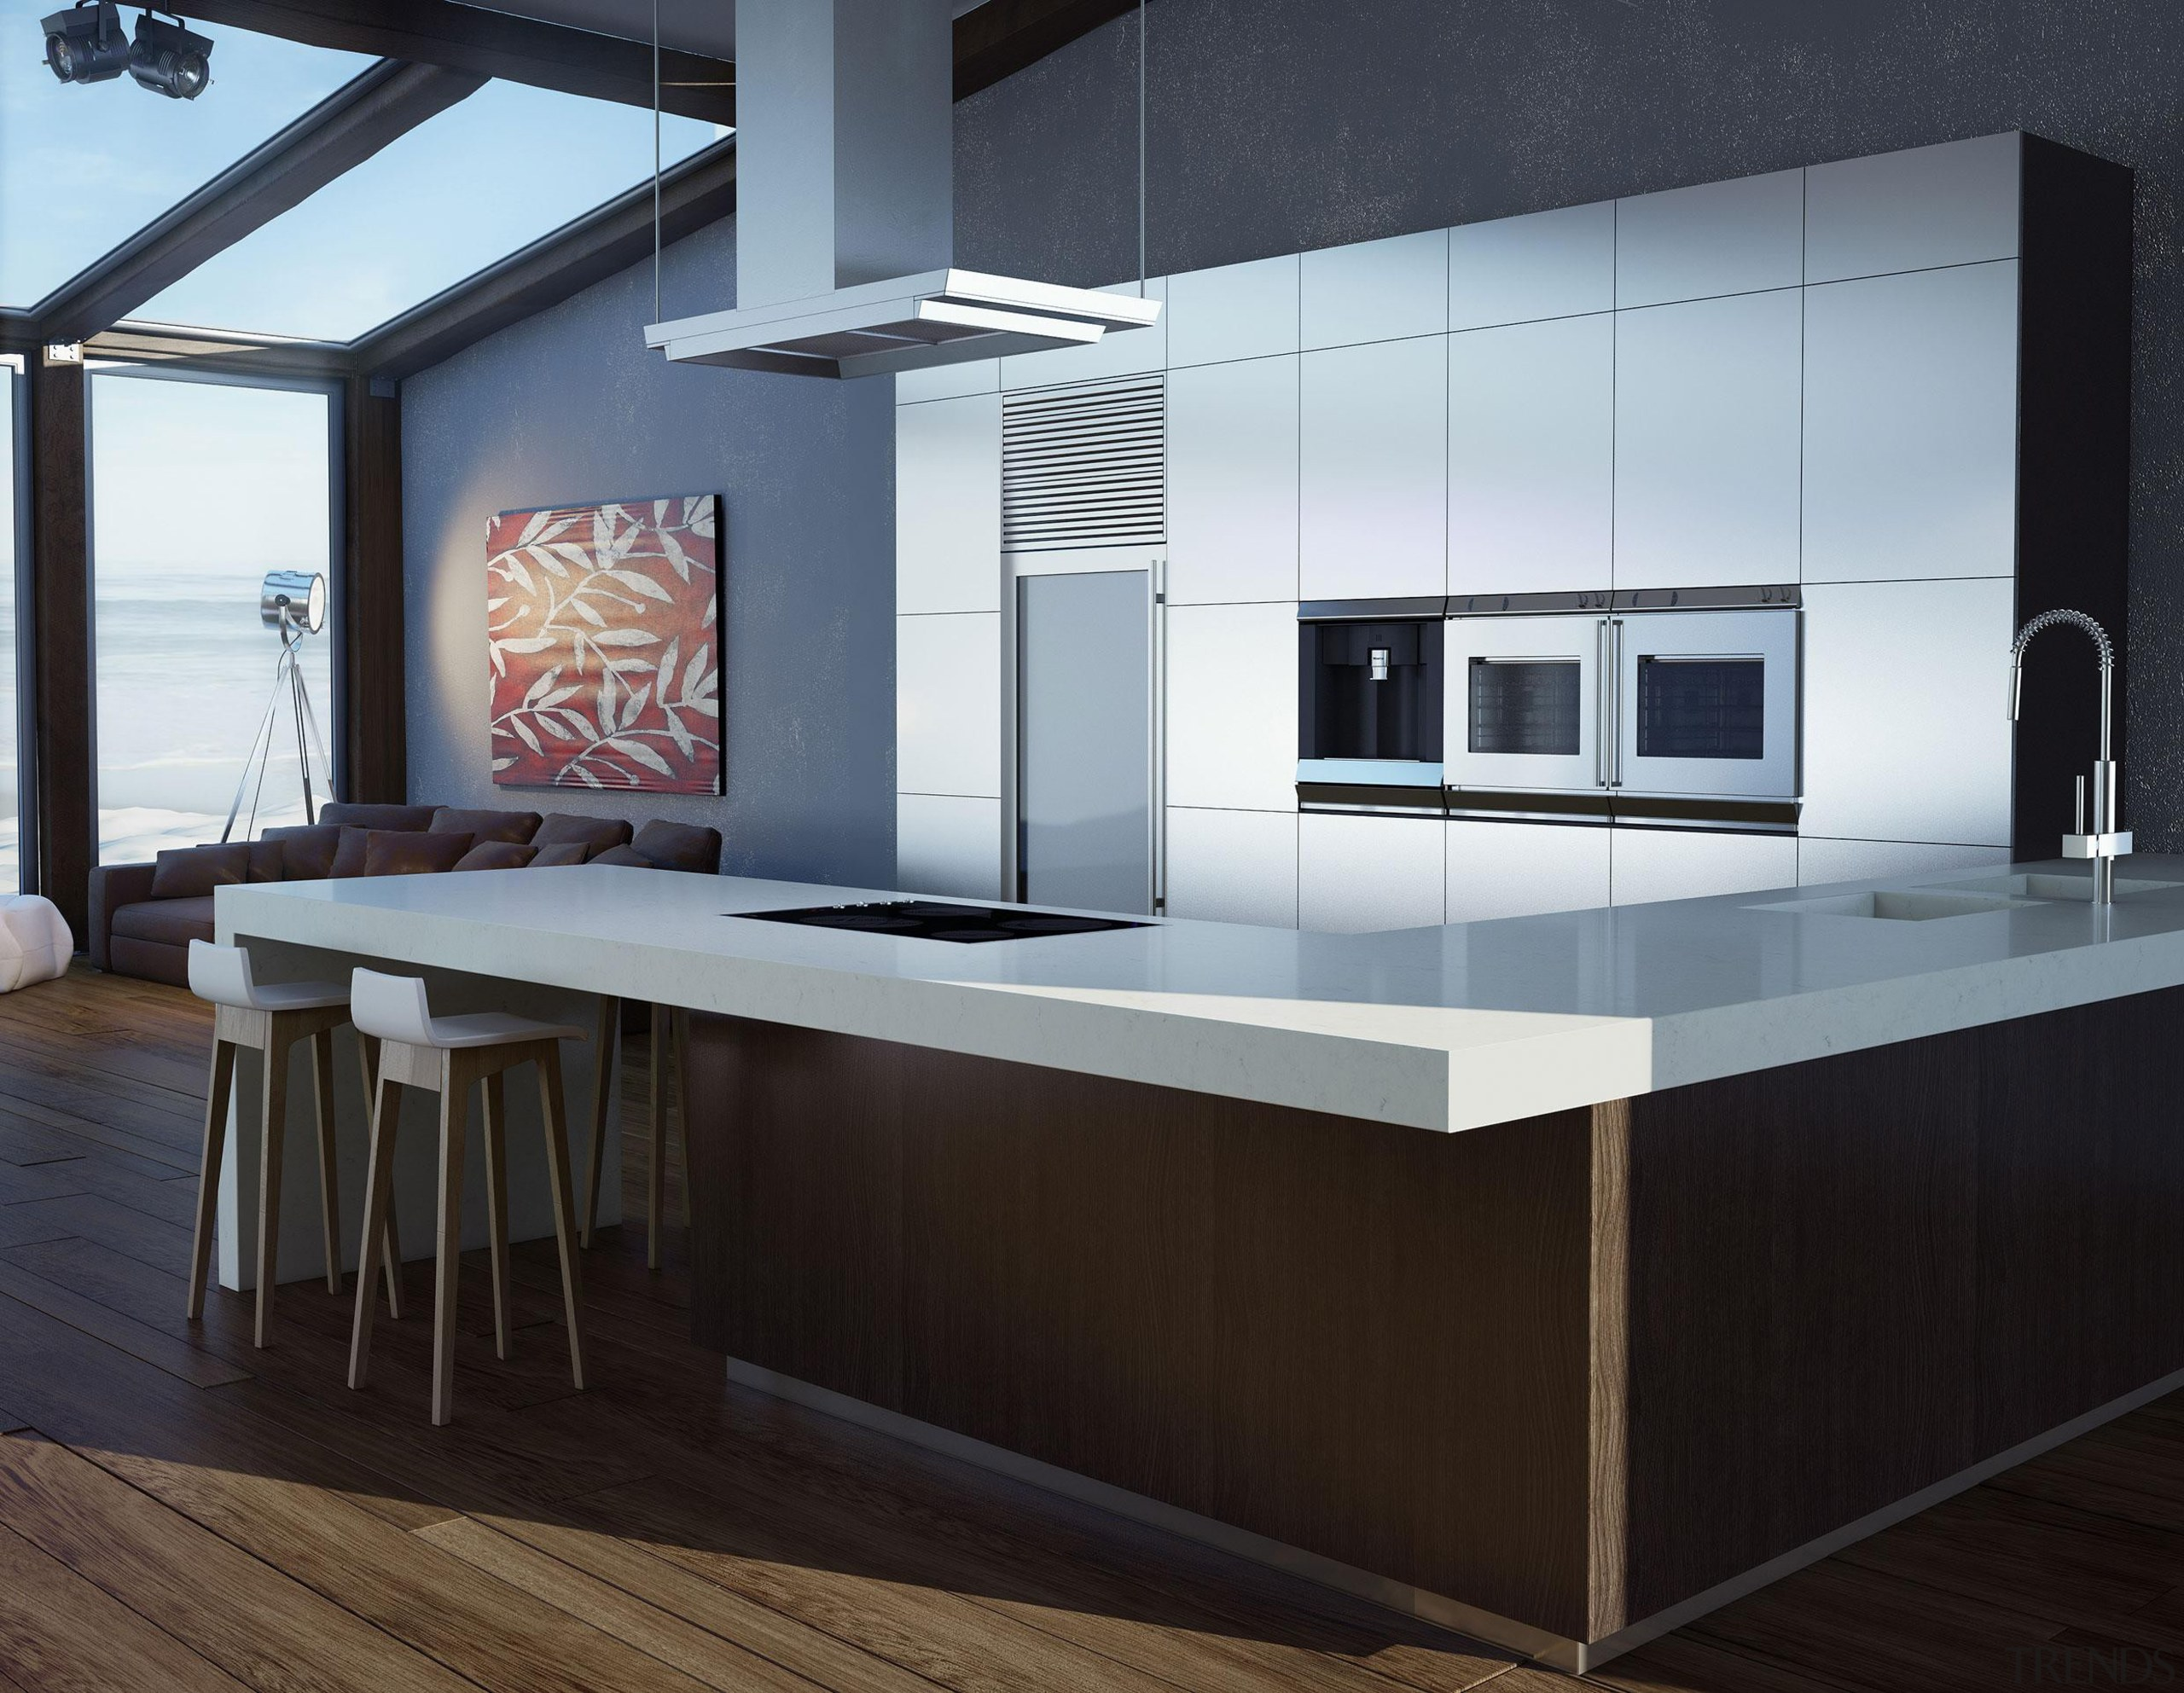 Featuring: Caesarstone Frosty Carrina - Sleek and Modern countertop, floor, furniture, interior design, kitchen, product design, table, black